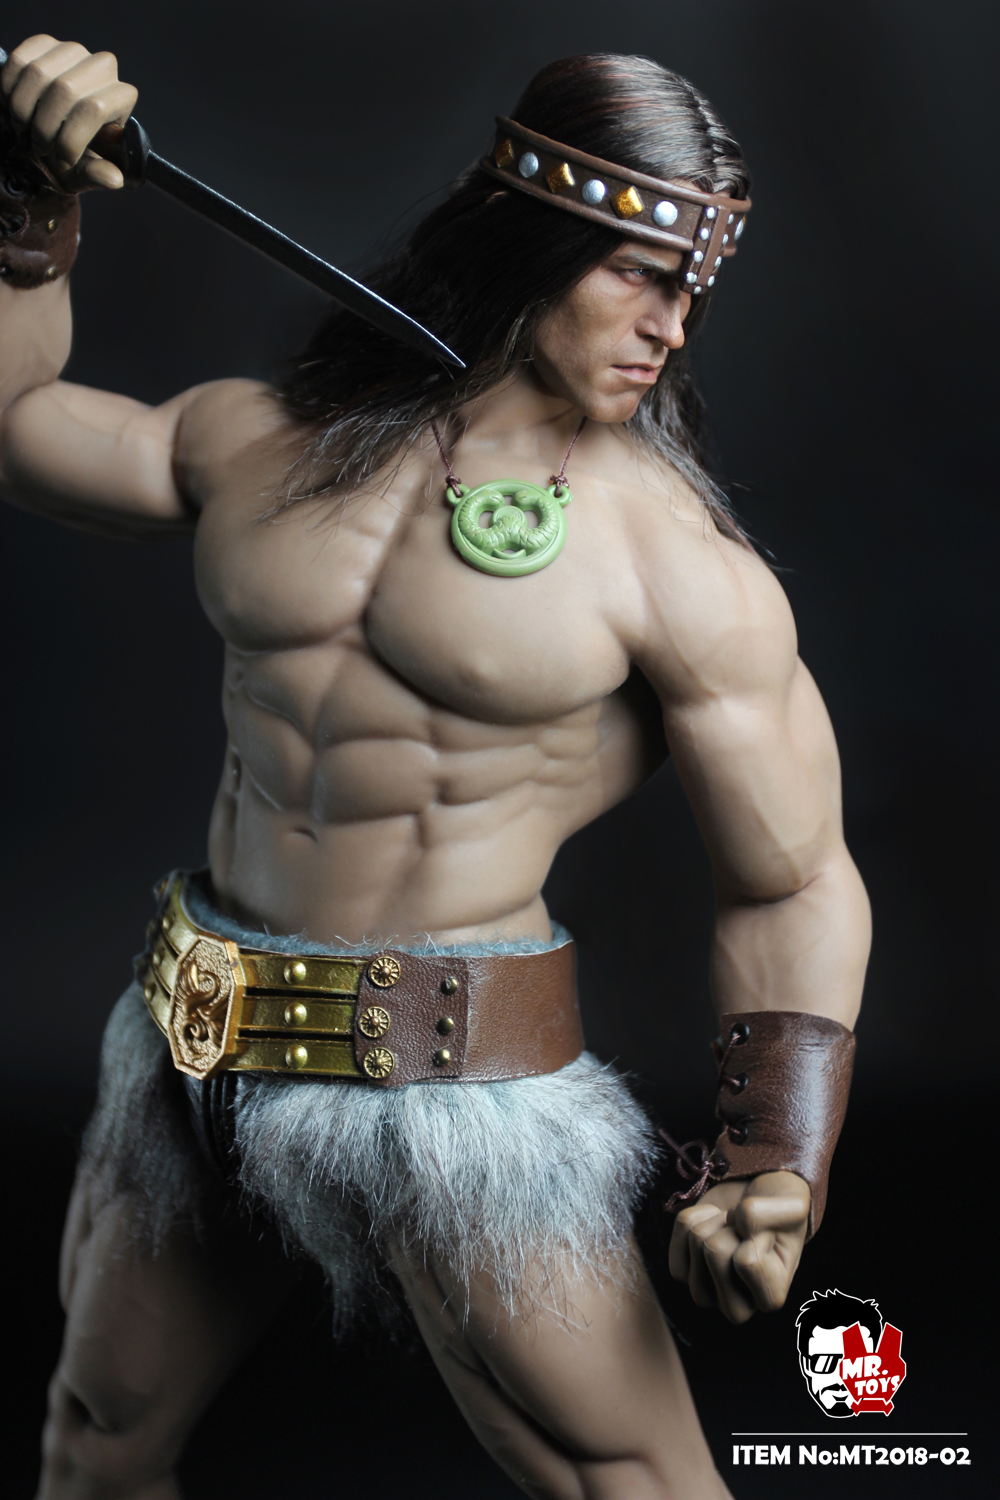 NEW PRODUCT:  Mr. Toys MT2018-02 1/6 Conan head carving costume set O1cn0111